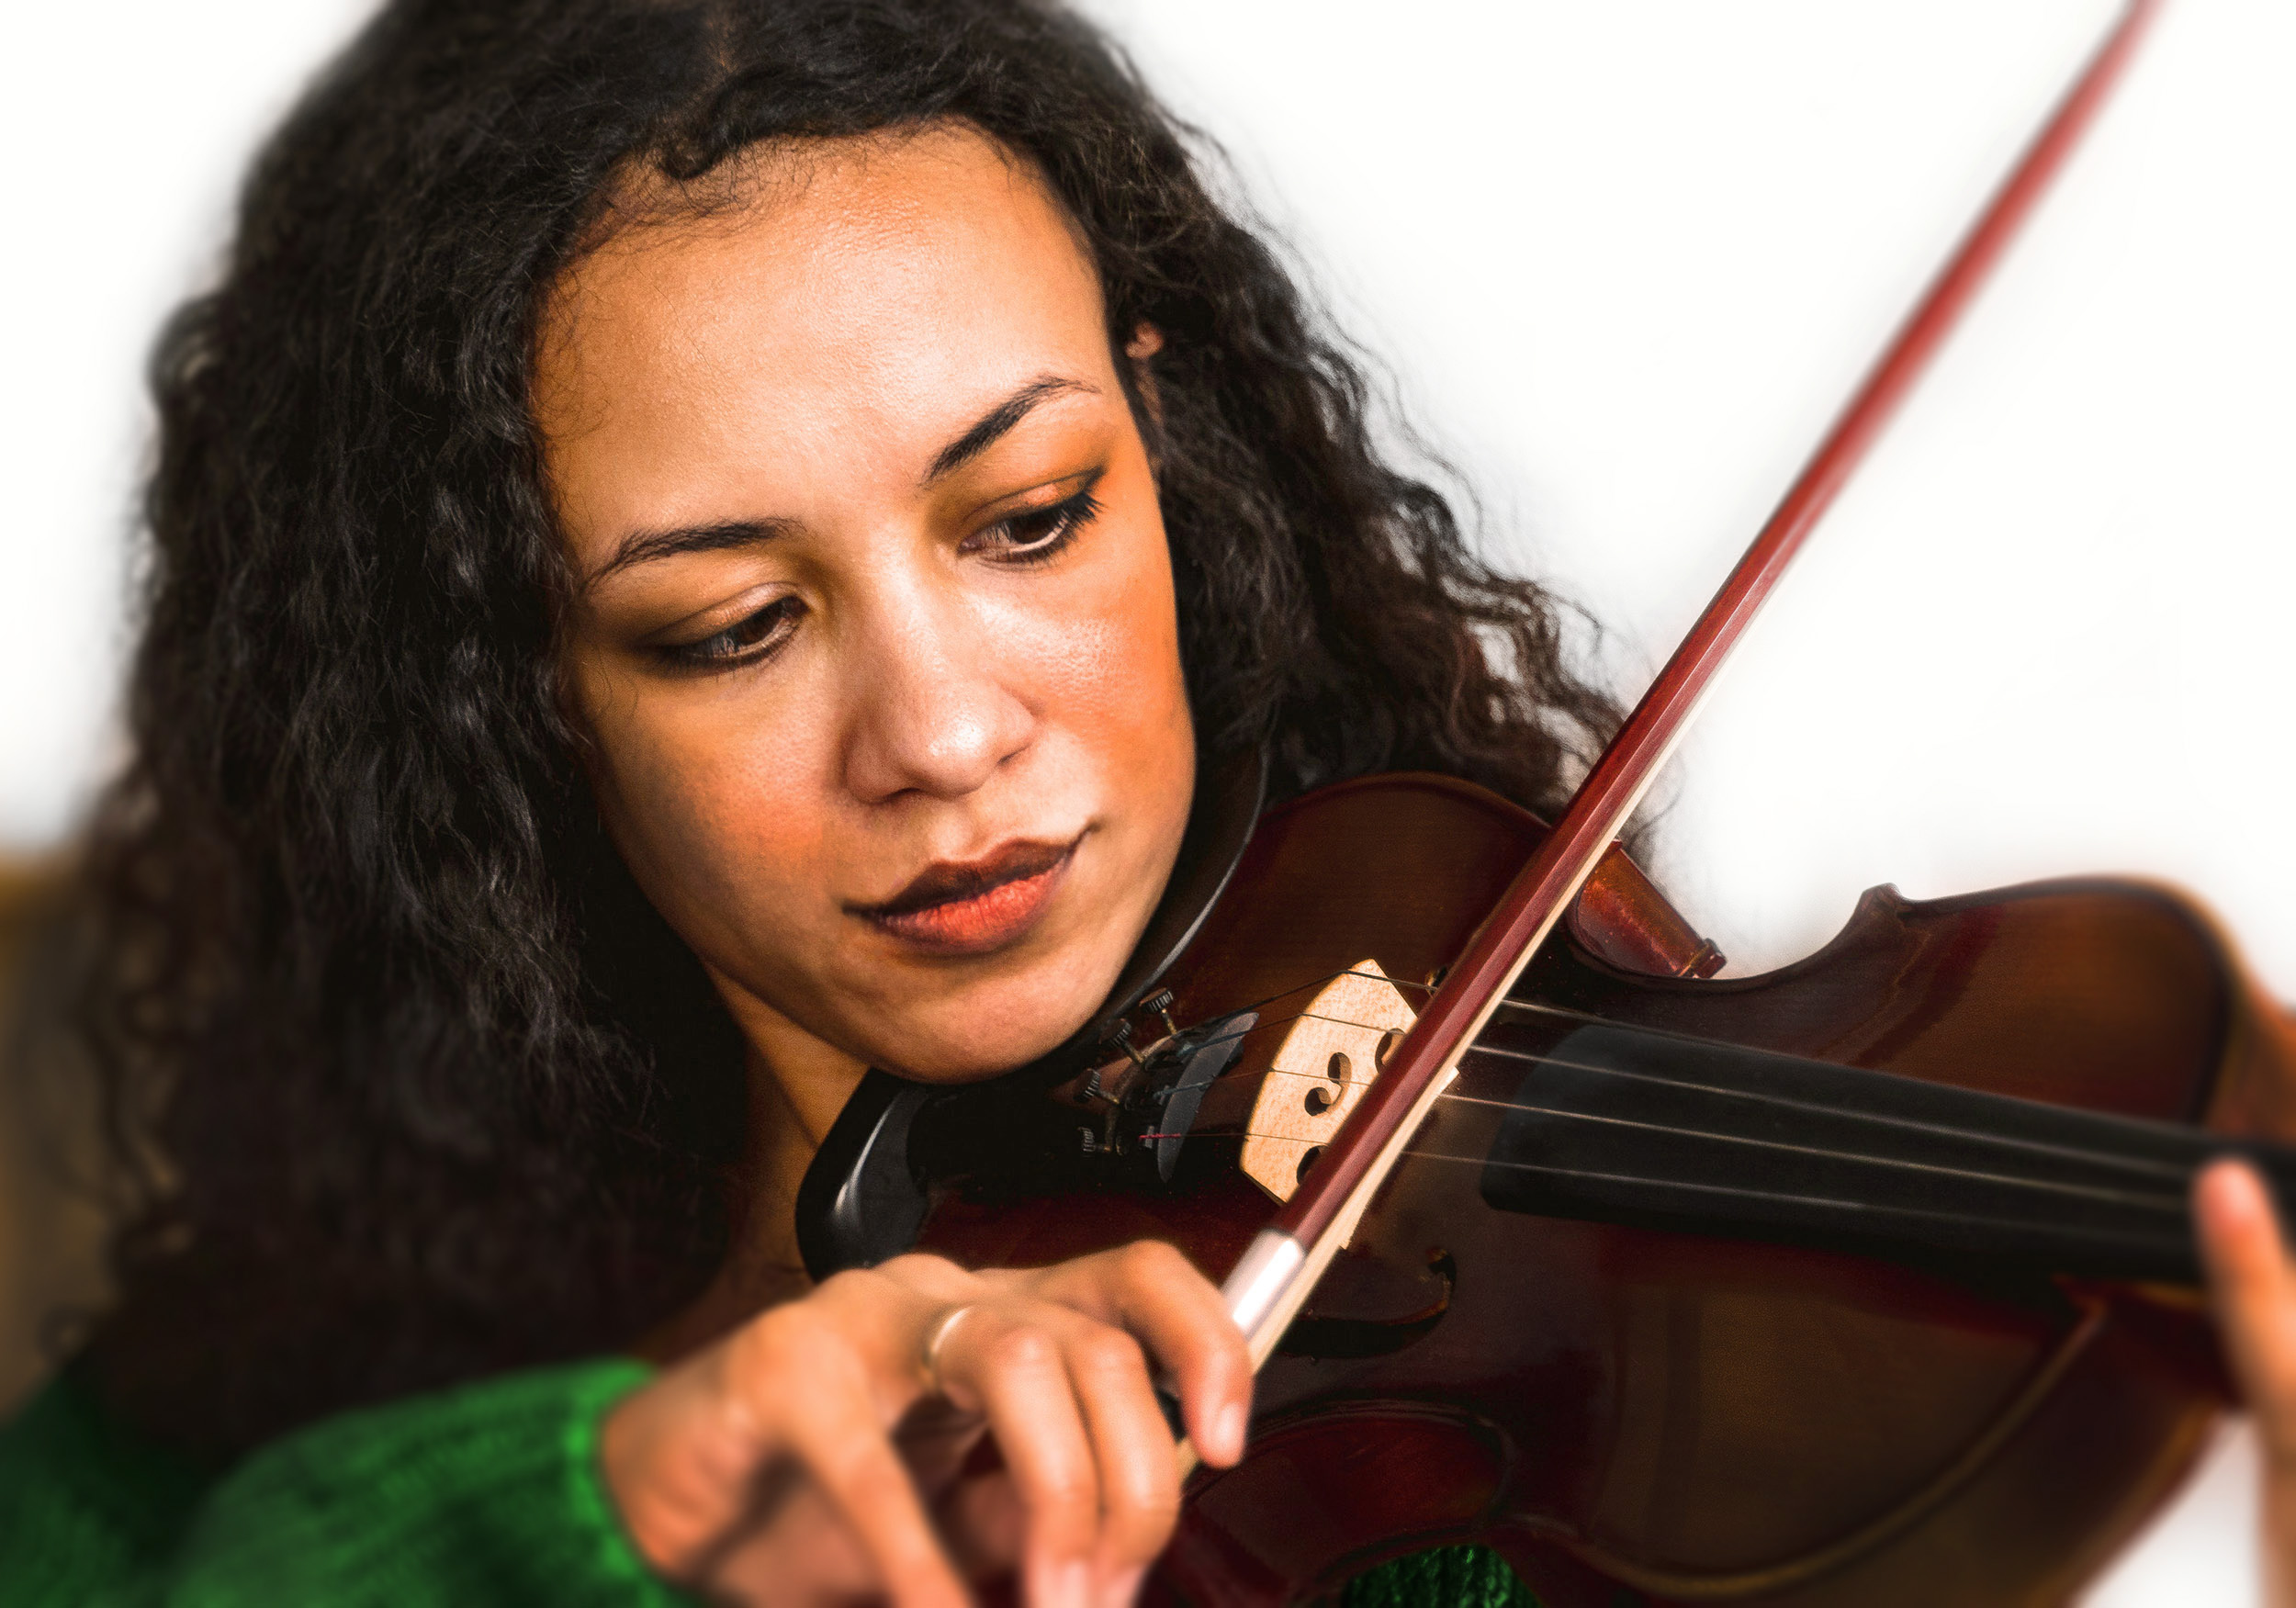 beautiful black woman with beautiful curly long hair and a green sweater smirking while playing a violin